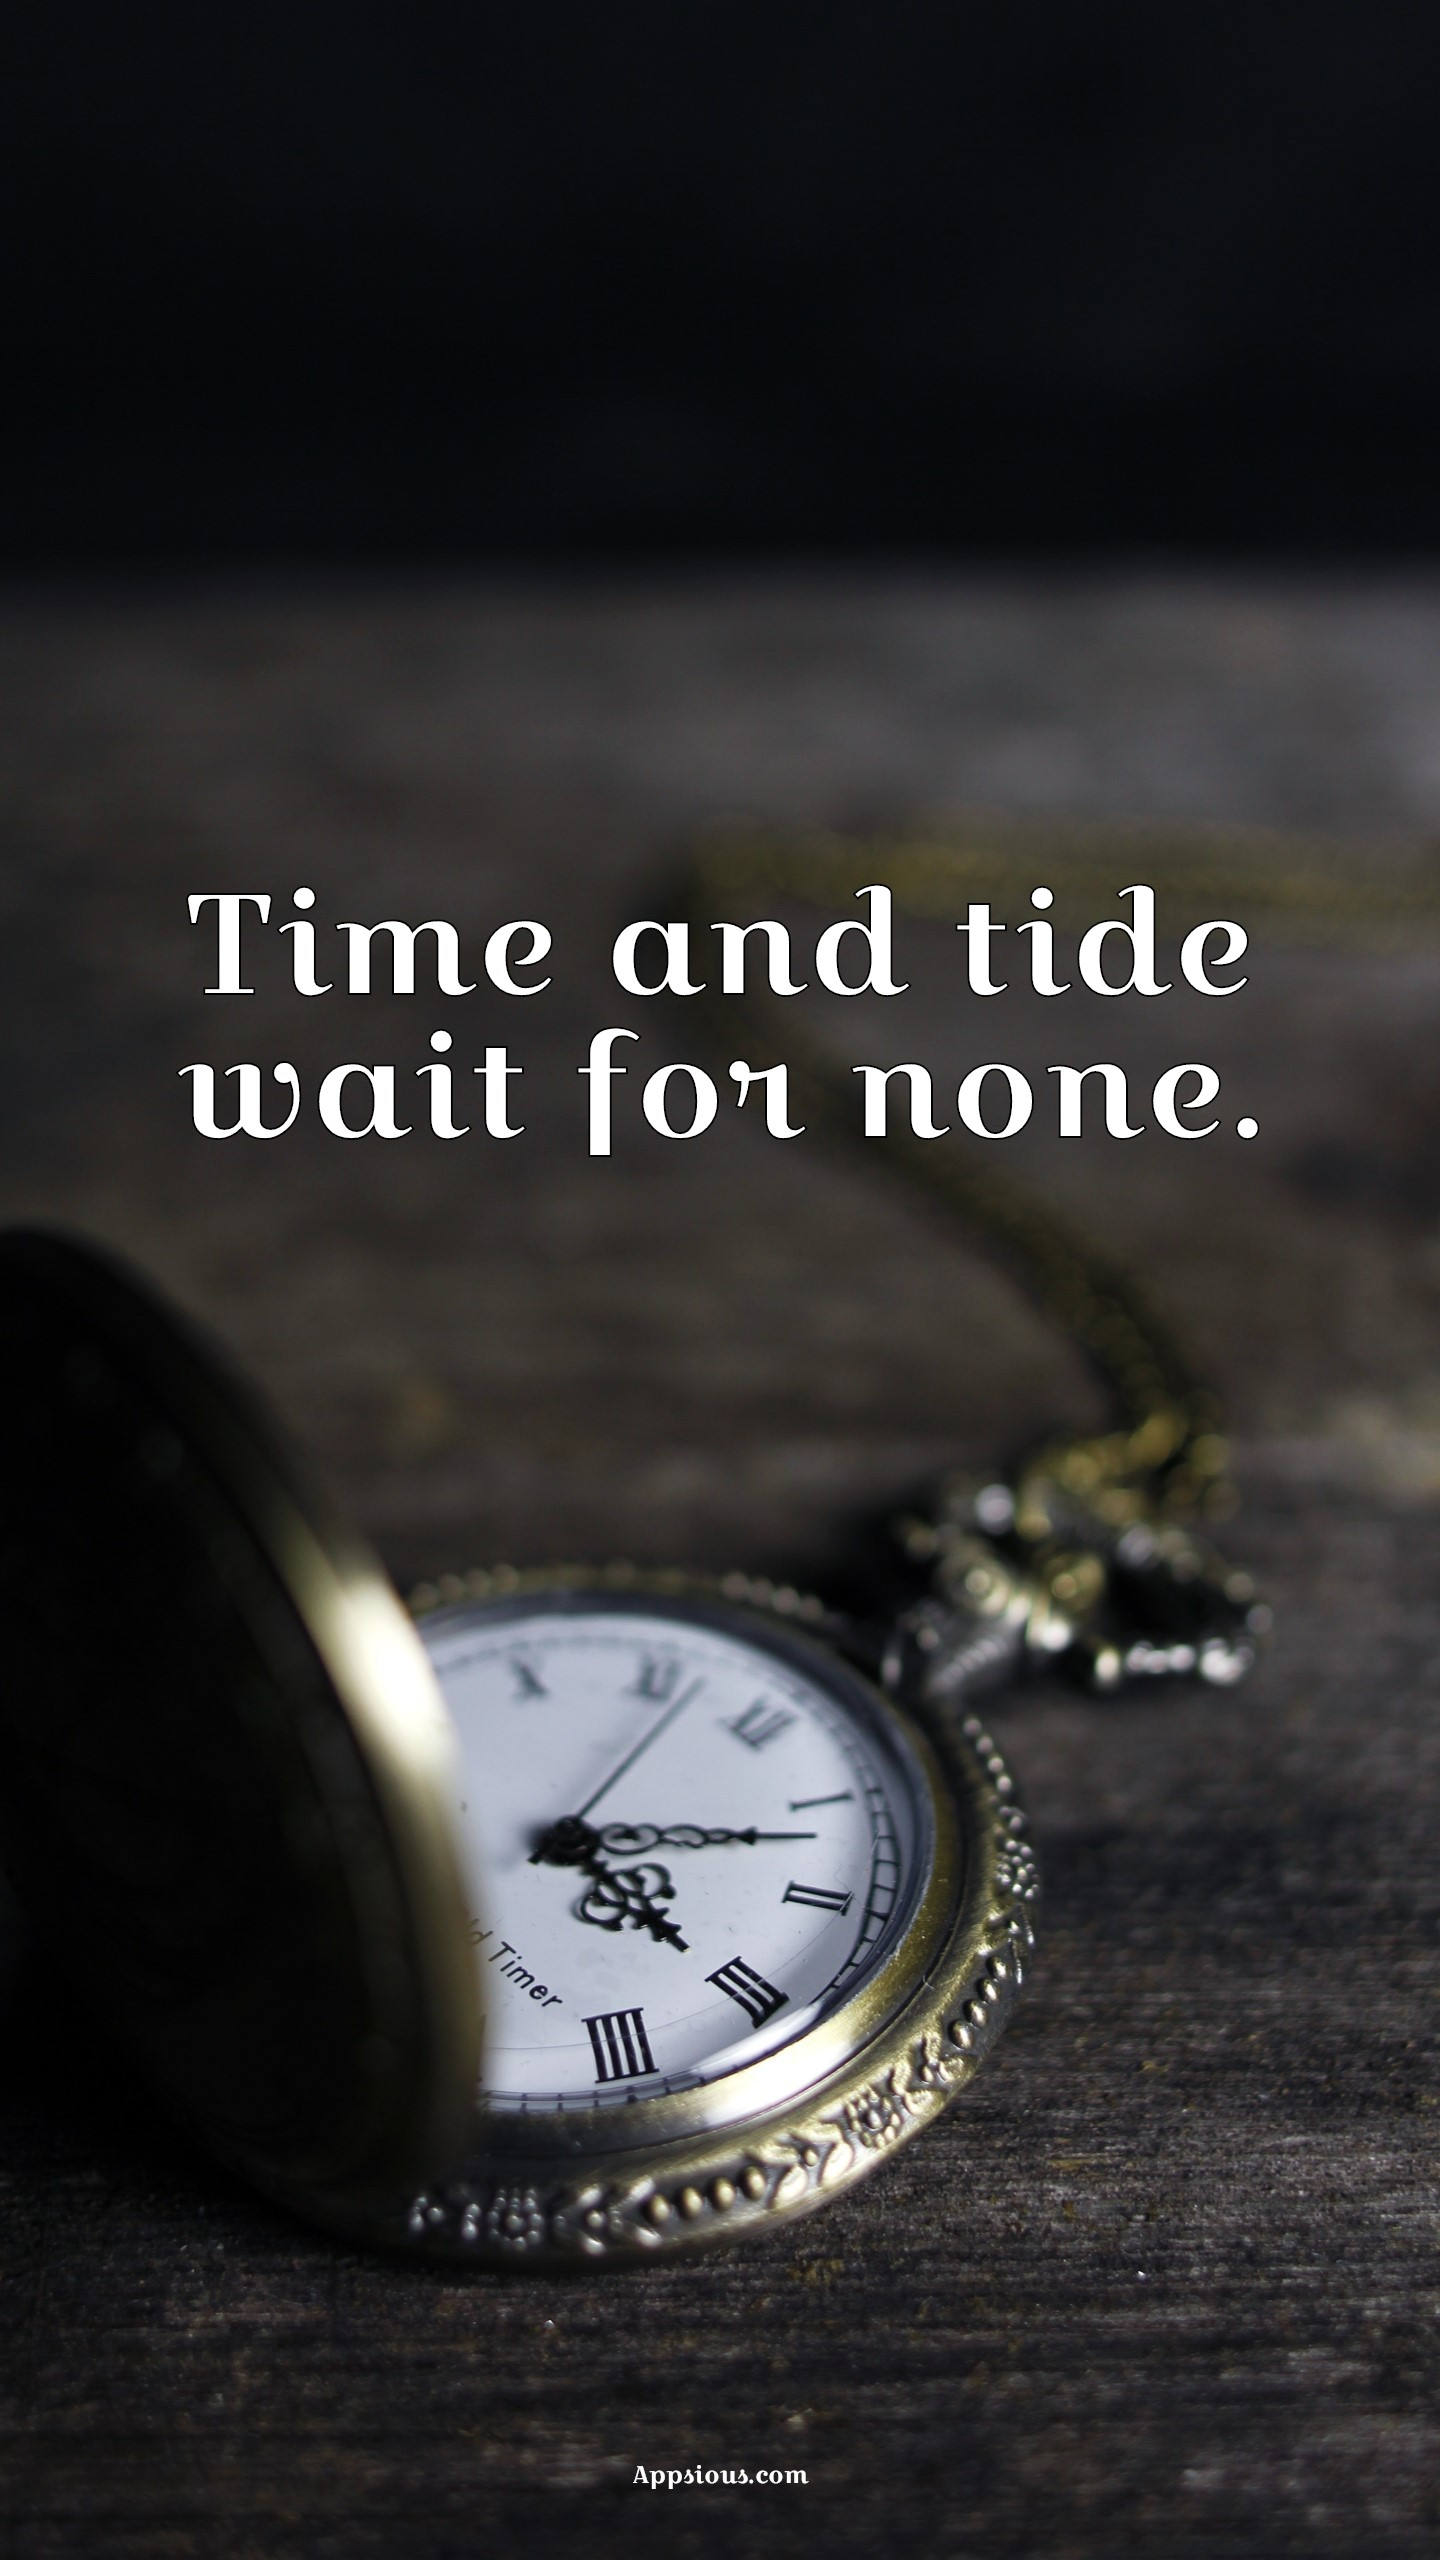 Time and tide wait for none.